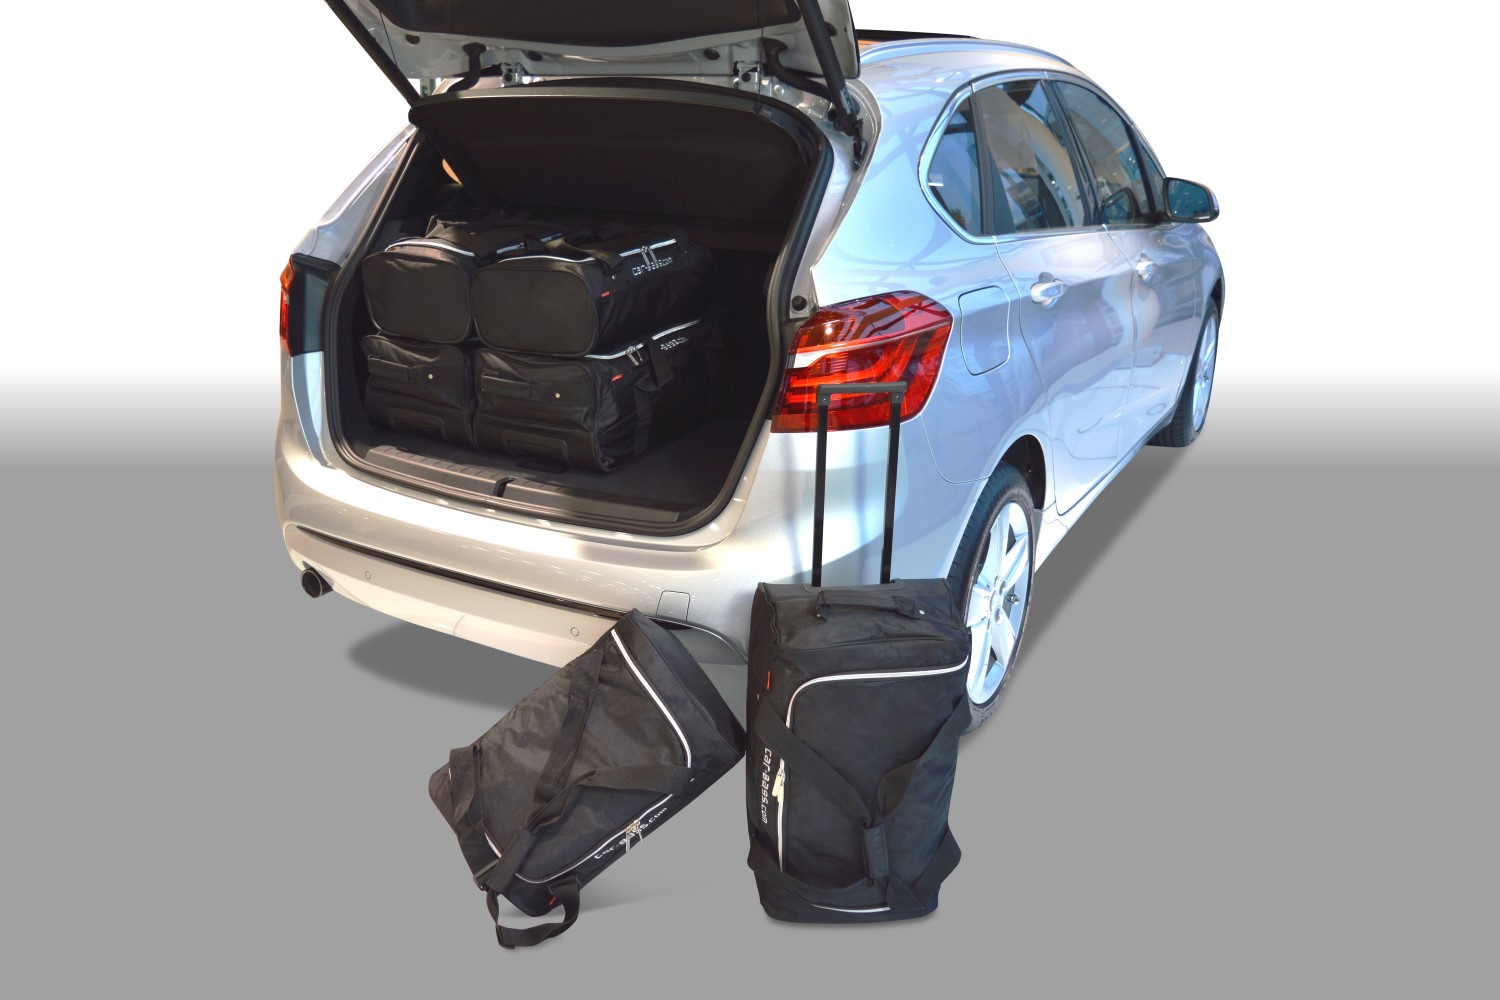 2 series bmw 2 series active tourer f45 2014 pr sent car bags set de sacs de voyage. Black Bedroom Furniture Sets. Home Design Ideas